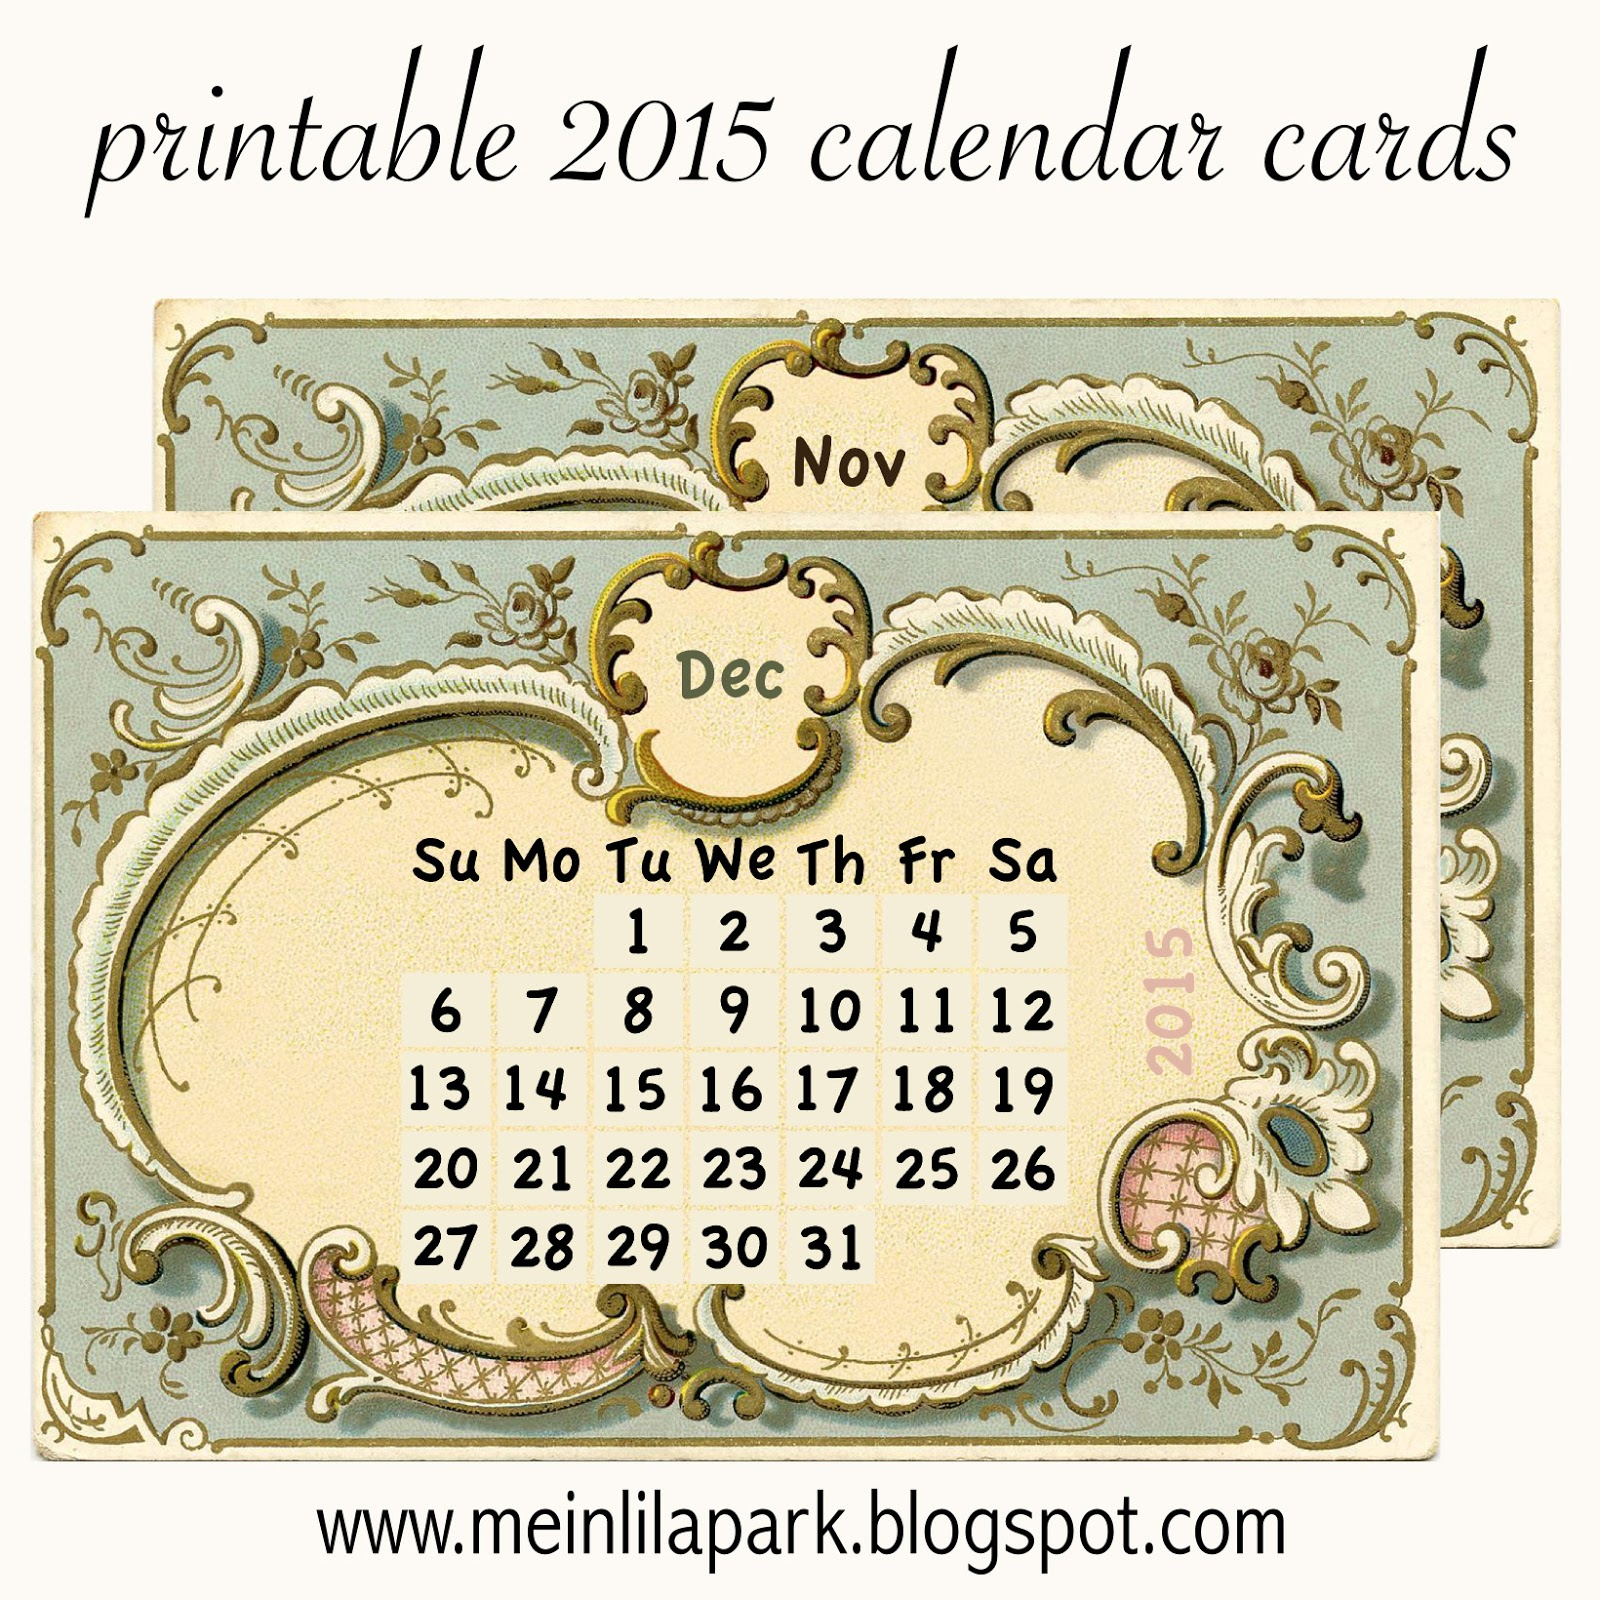 Calendar Cards Printables : Free printable calendar cards part